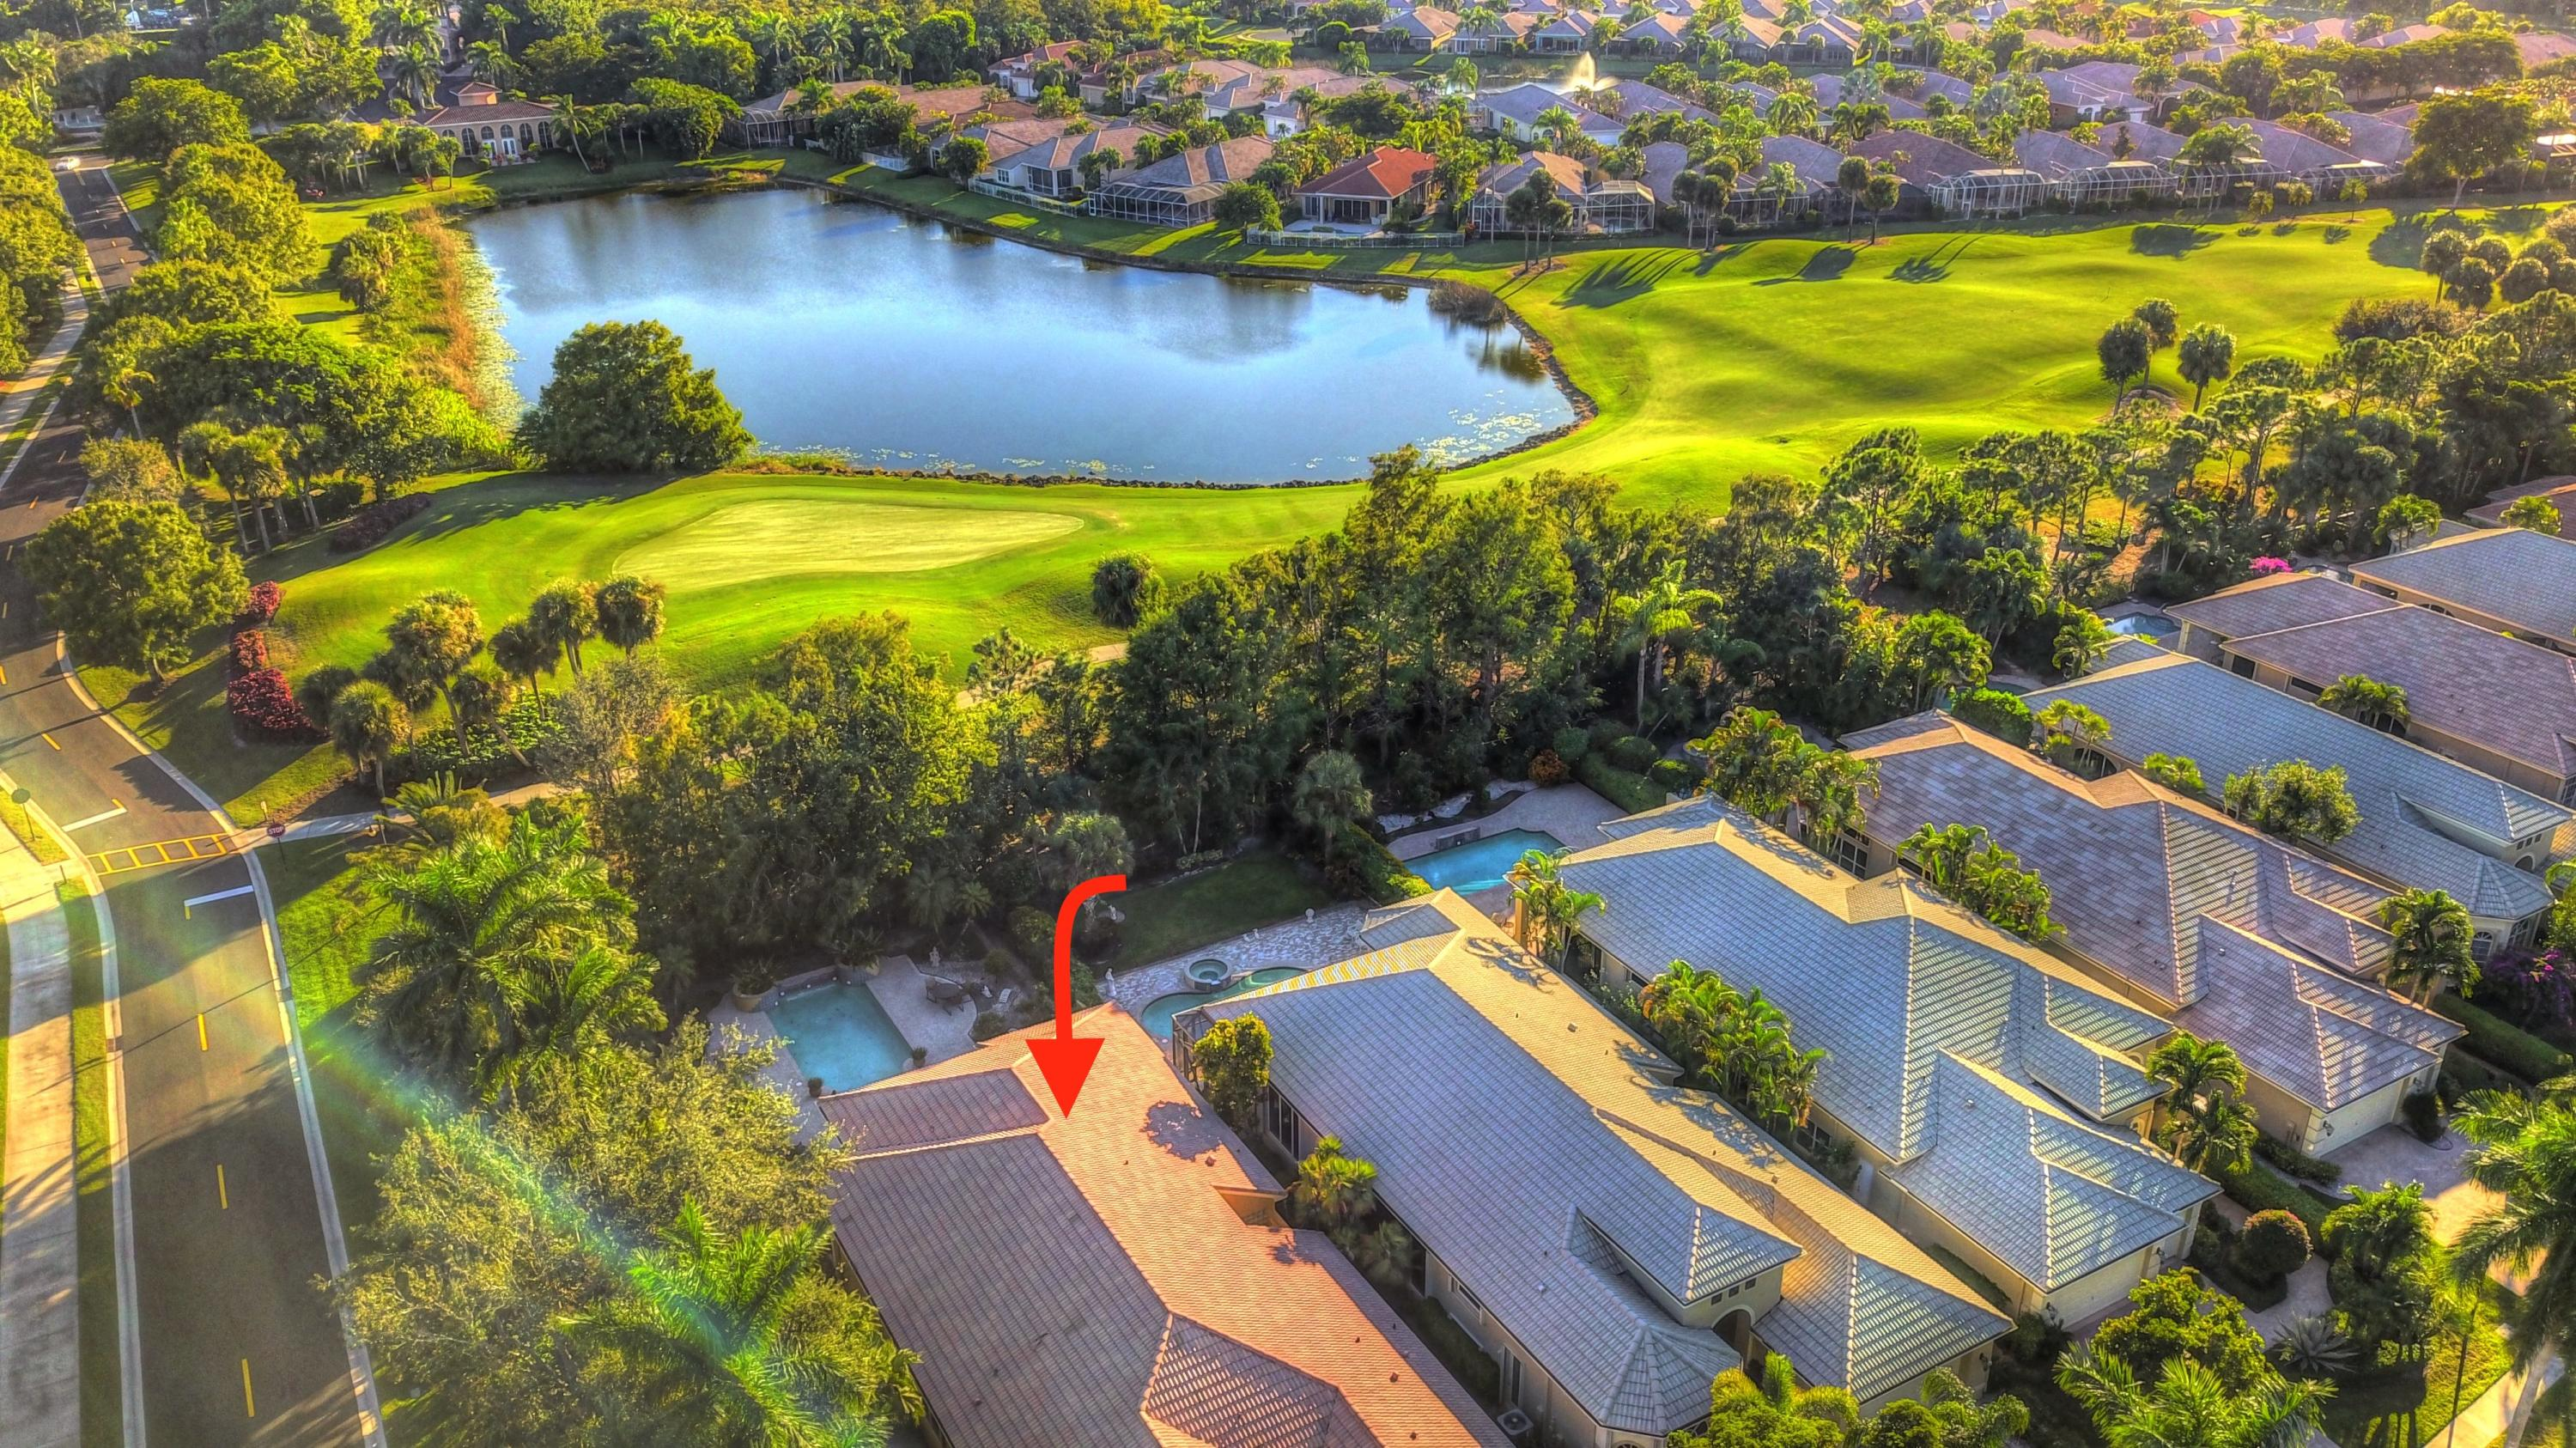 Aerial view of lake & golf course